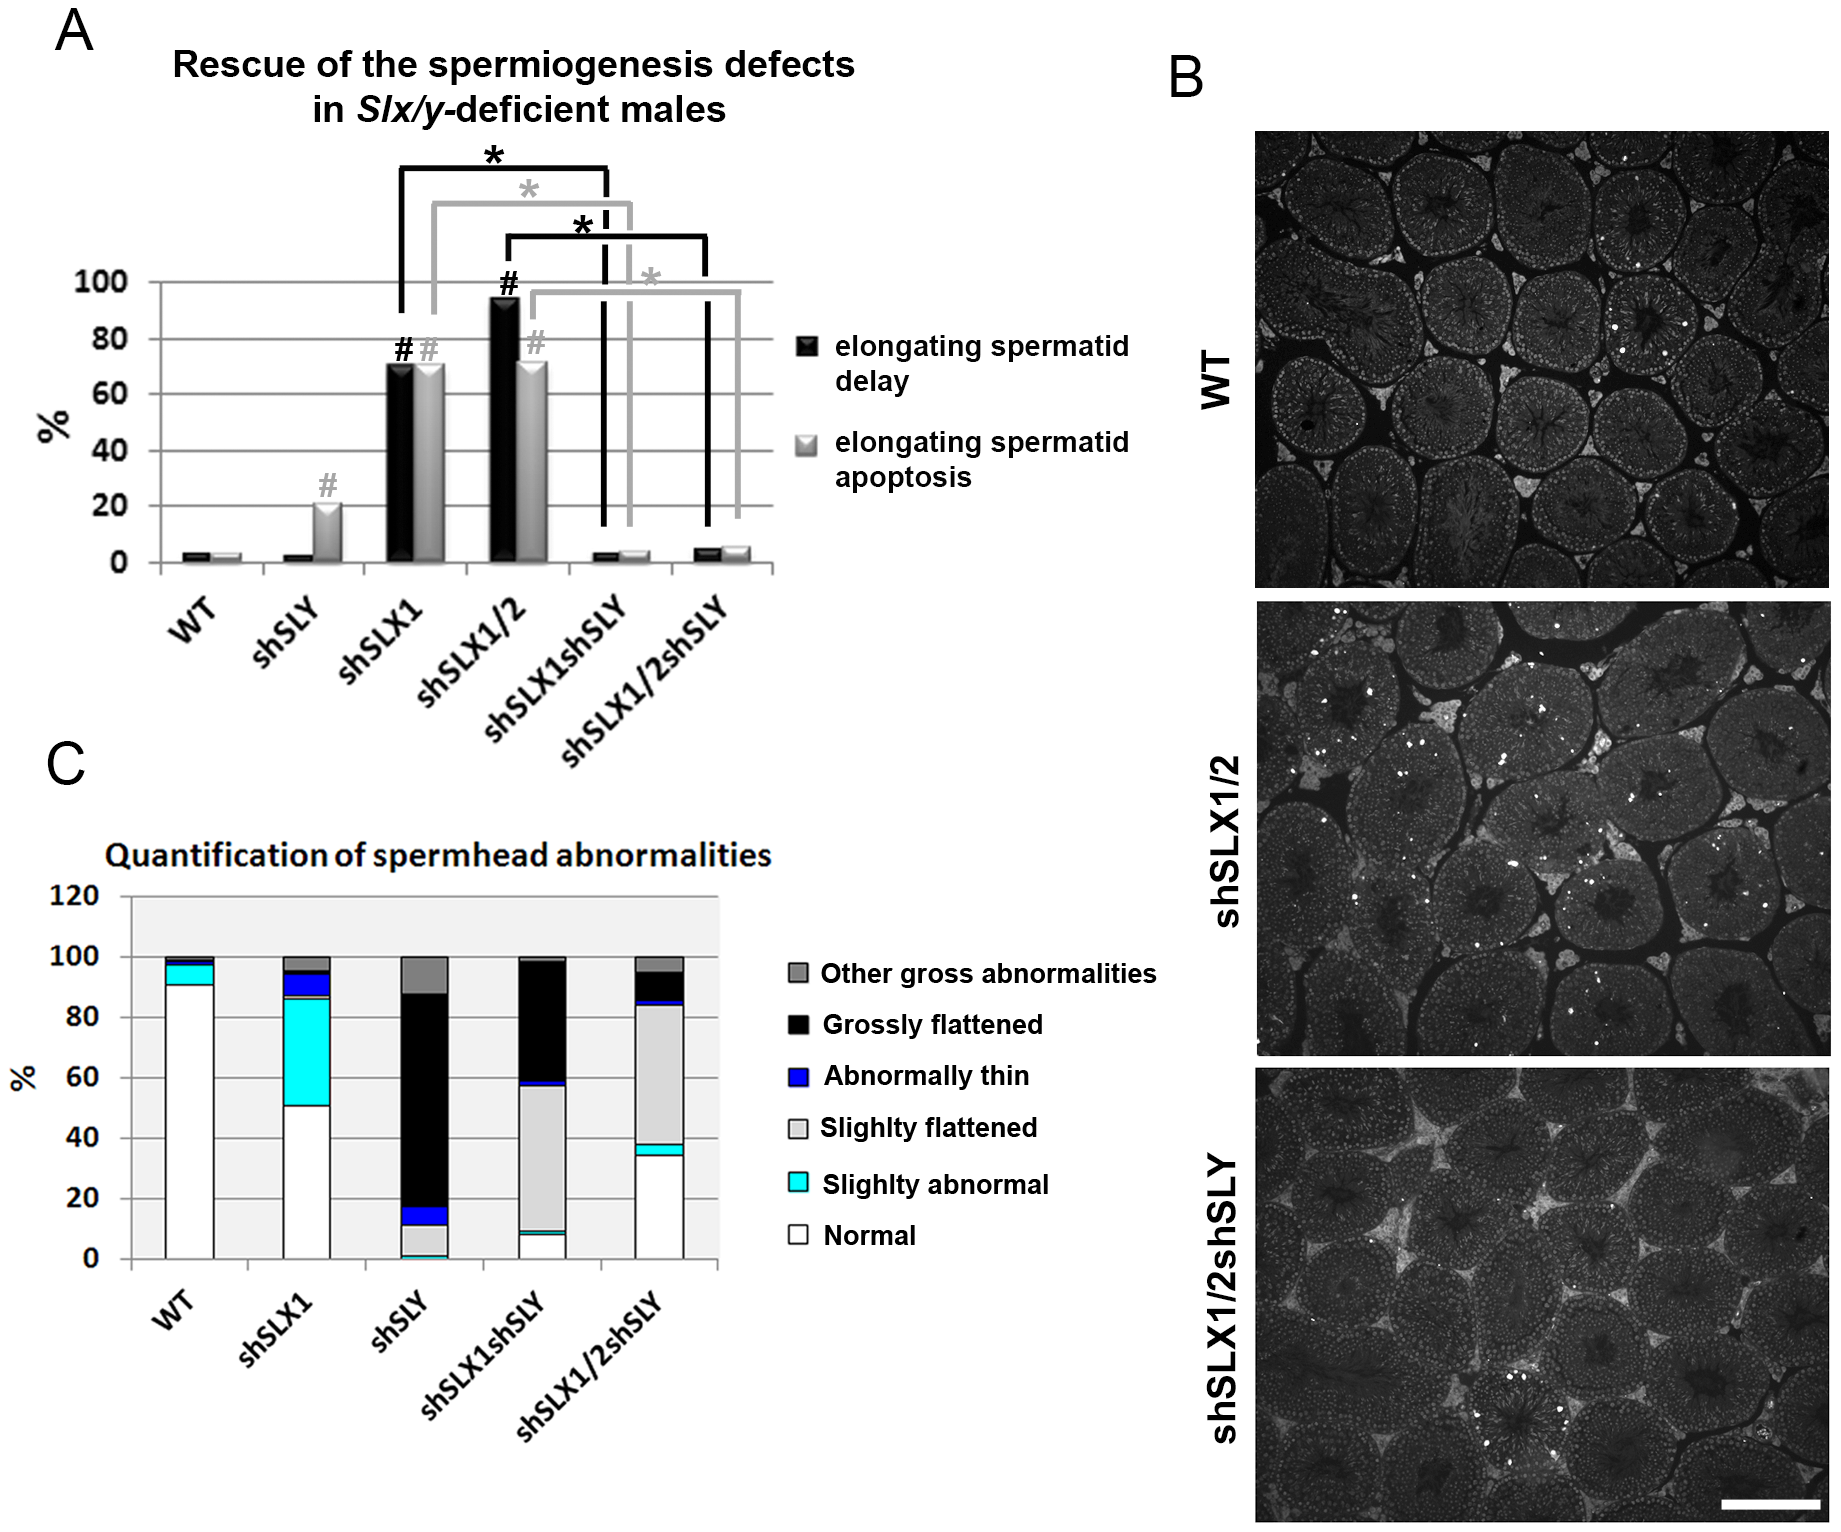 <i>Slx/y</i>-deficient males have fewer spermiogenesis defects than males that are deficient for either <i>Sly</i> or <i>Slx/Slxl1</i> alone.